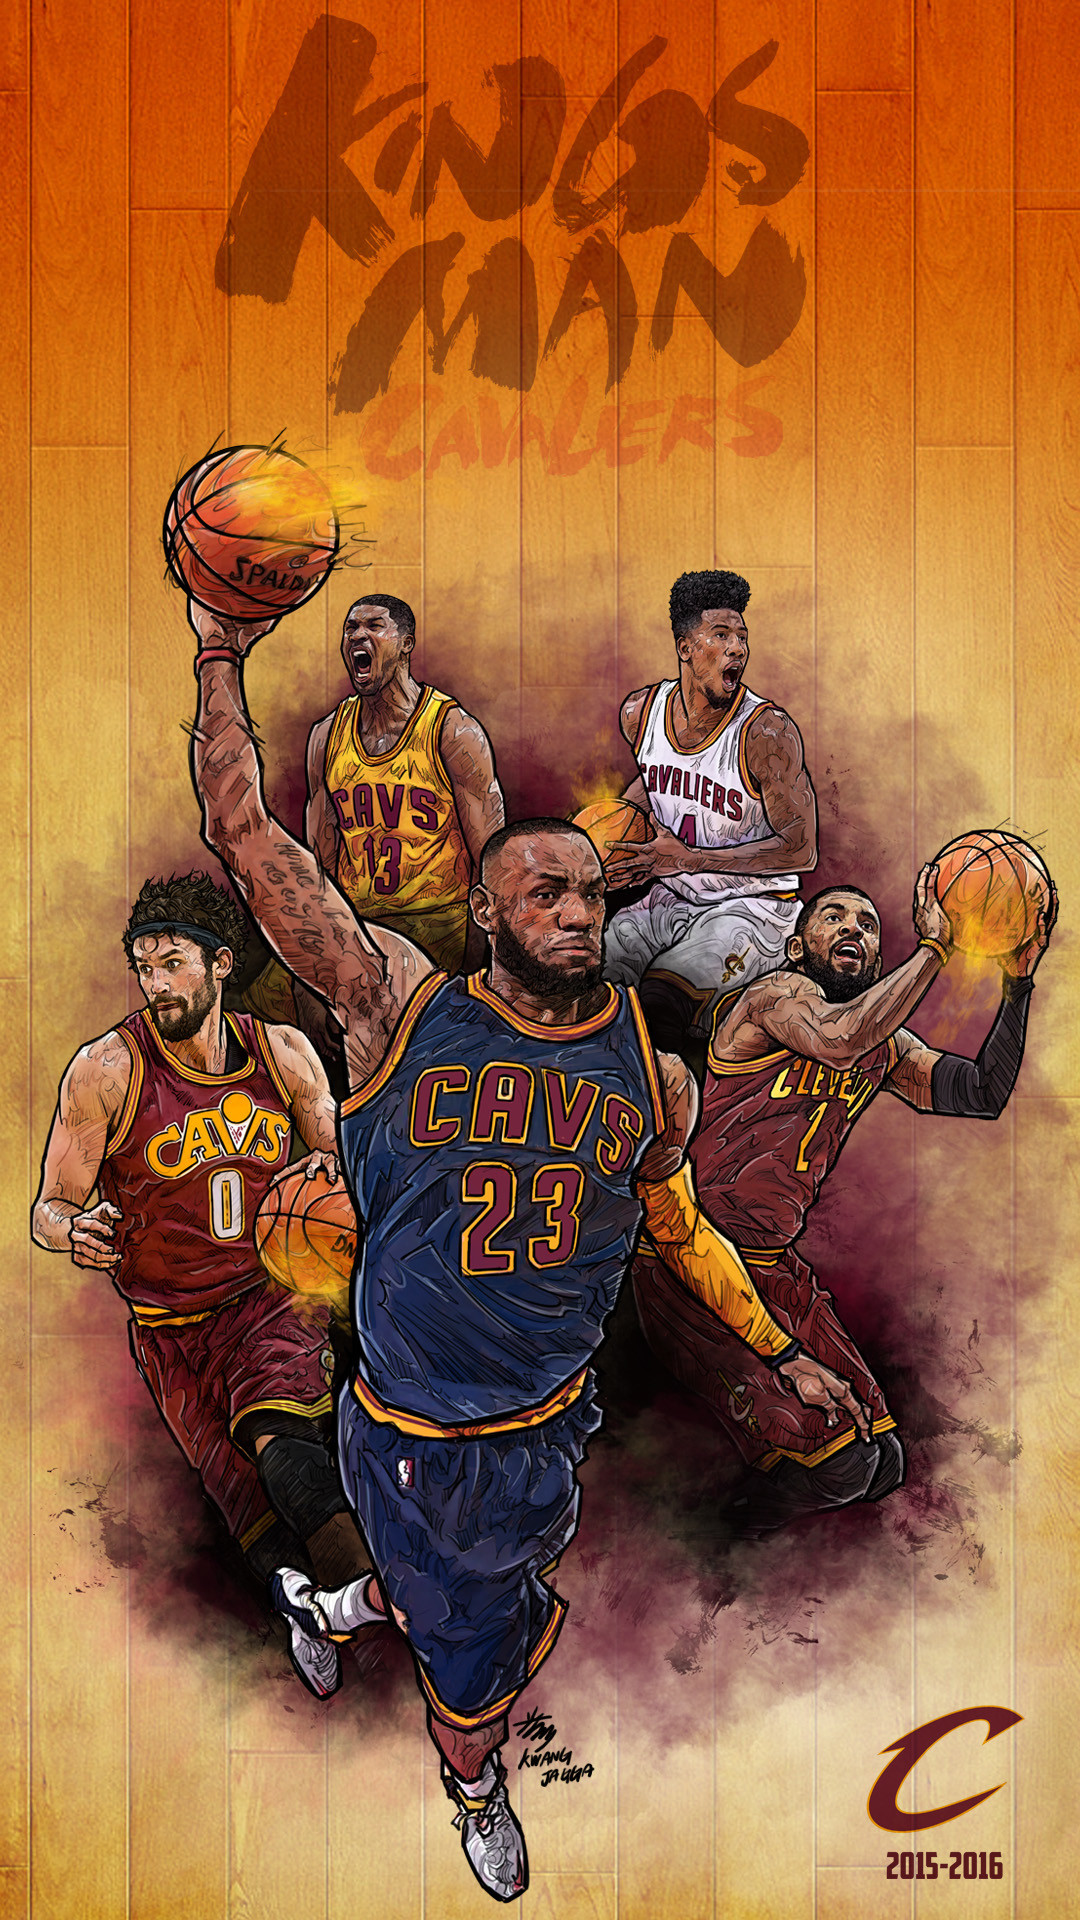 Nba basketball wallpaper 2018 63 images - Nba all teams wallpaper ...